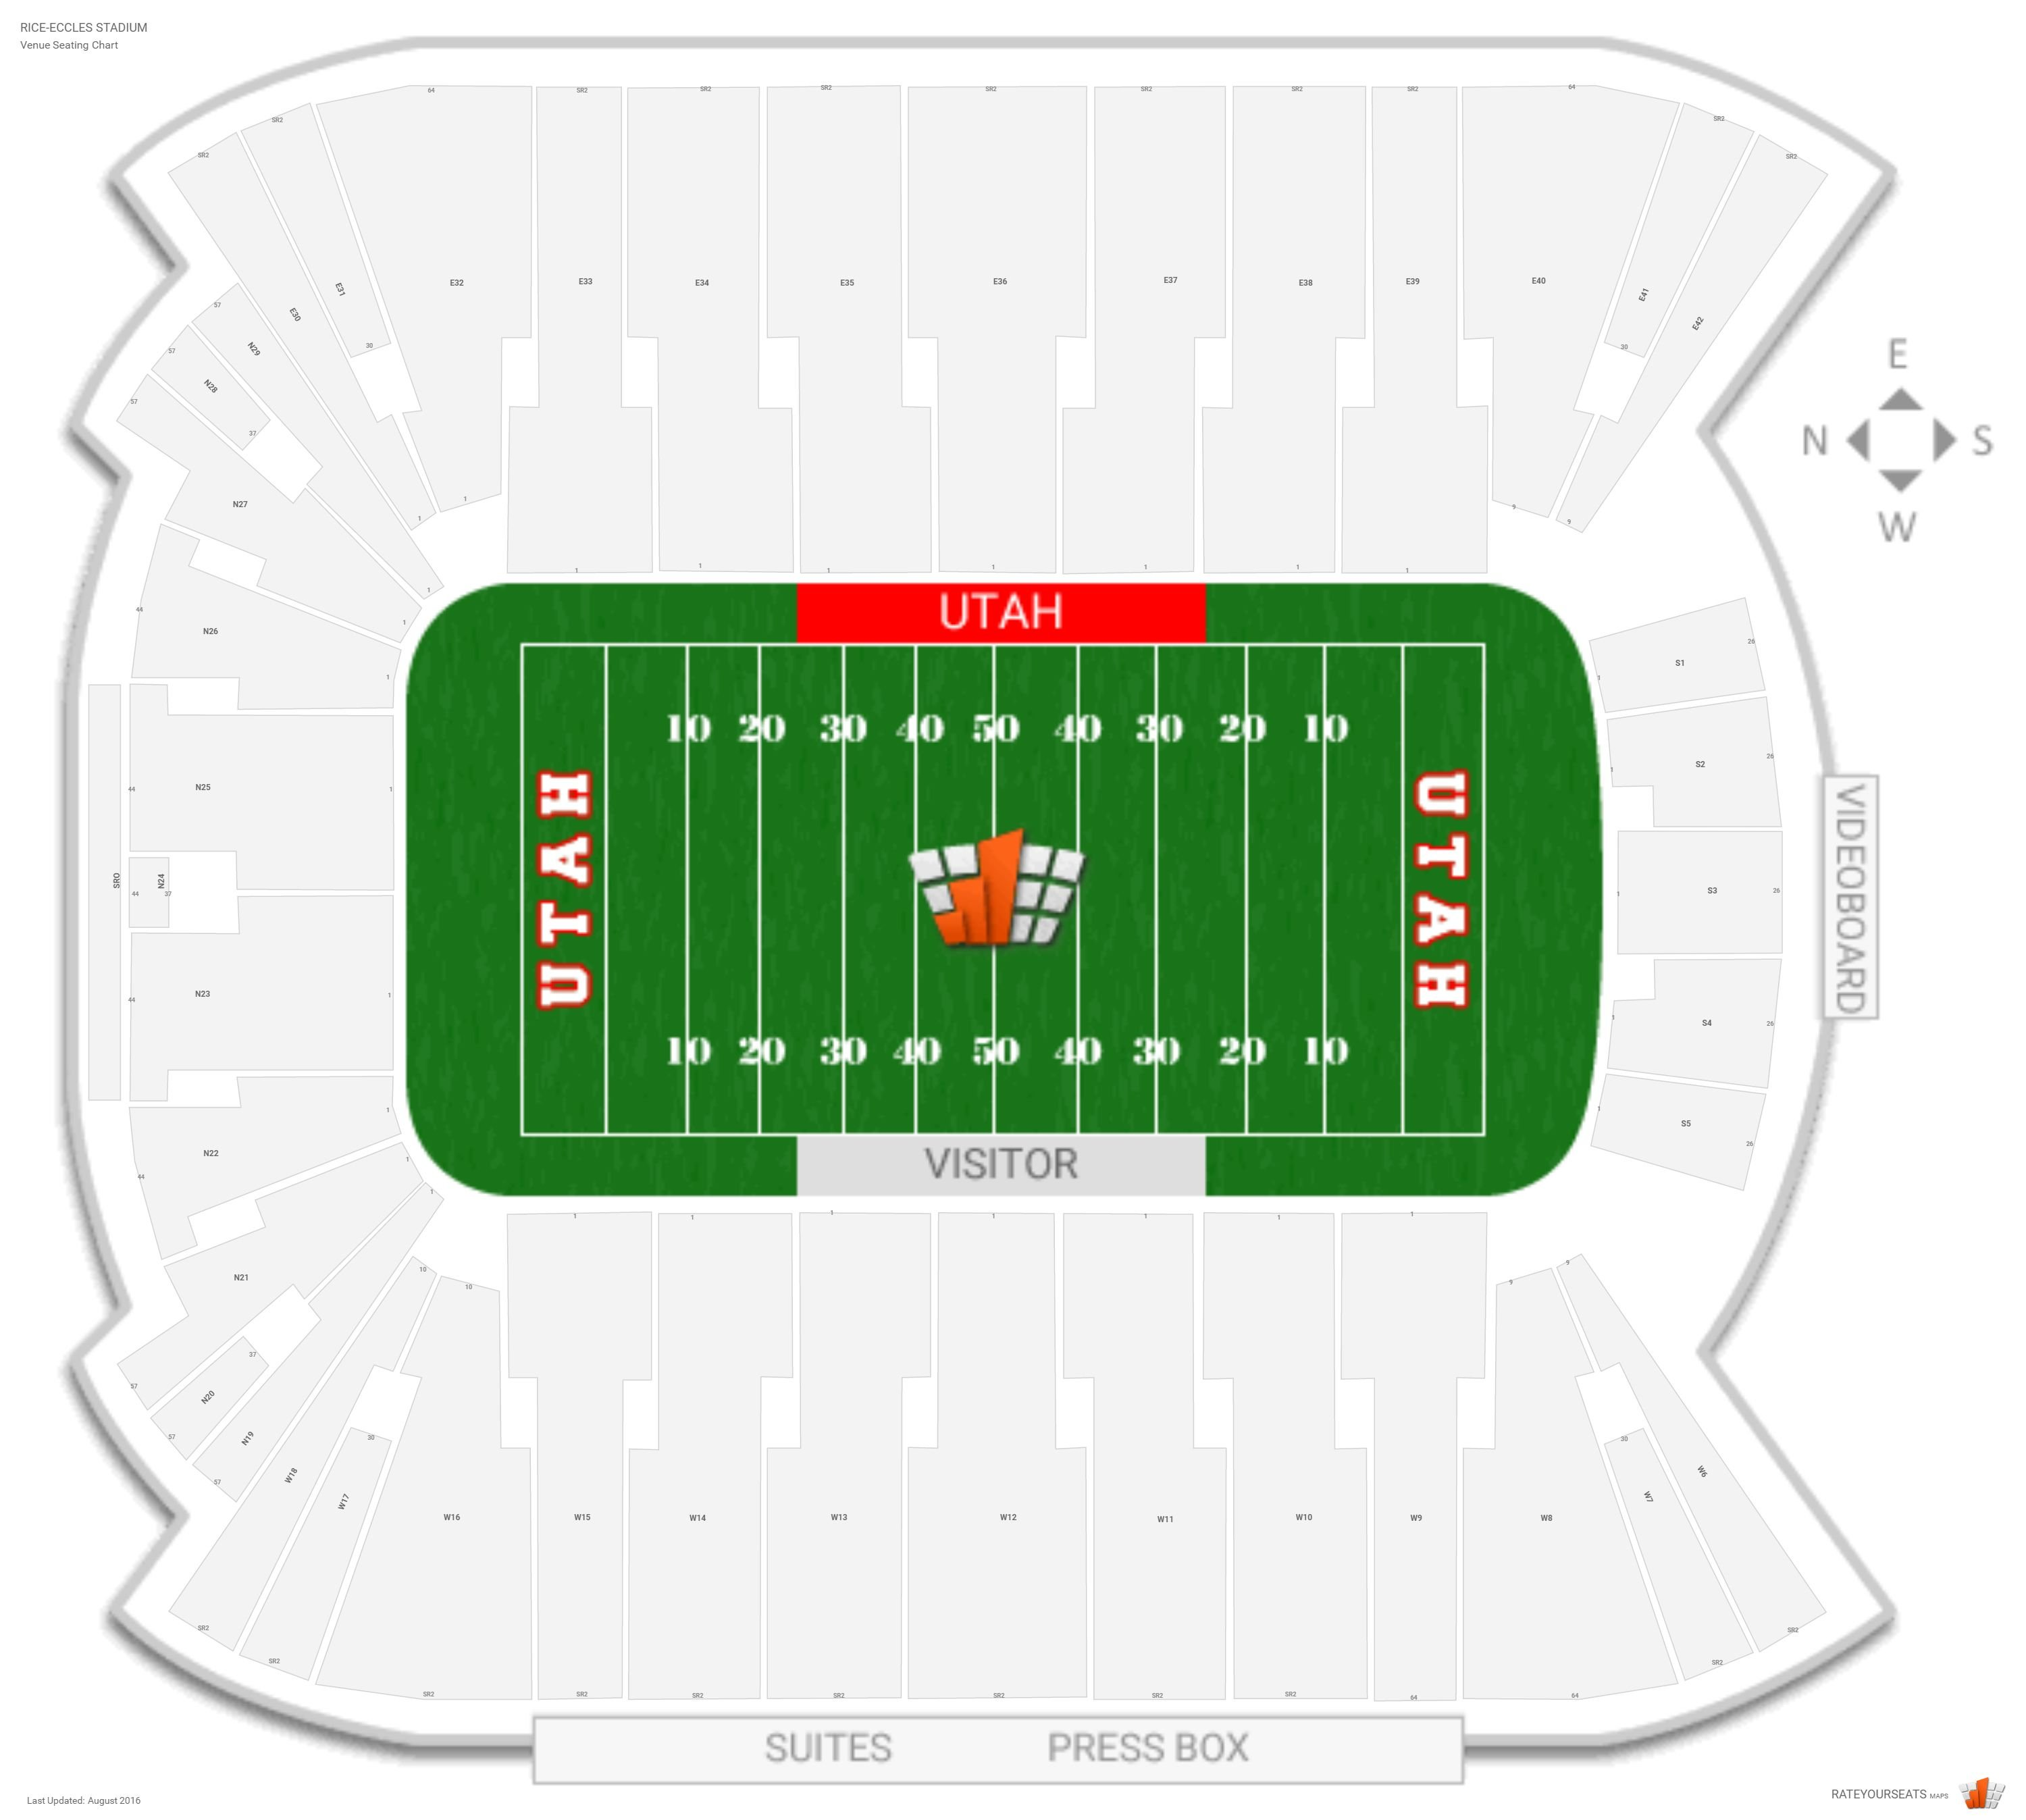 Rice eccles stadium utah seating guide rateyourseats com